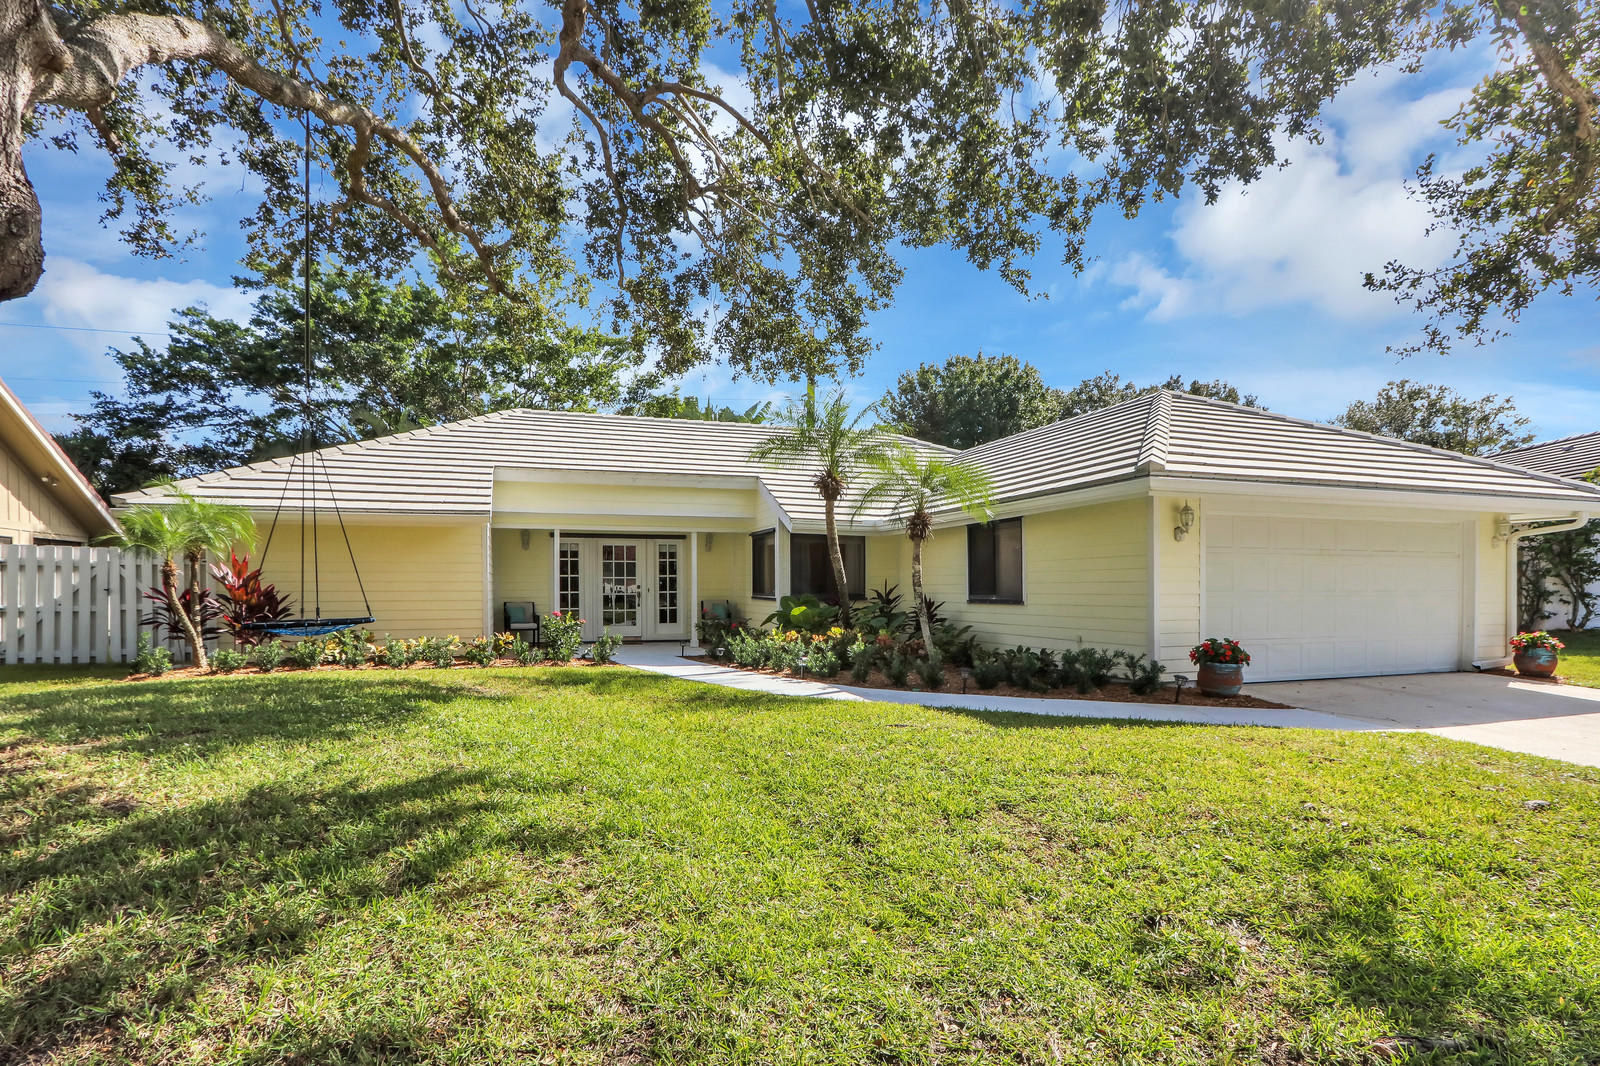 Home for sale in maplewood ph 1 Jupiter Florida